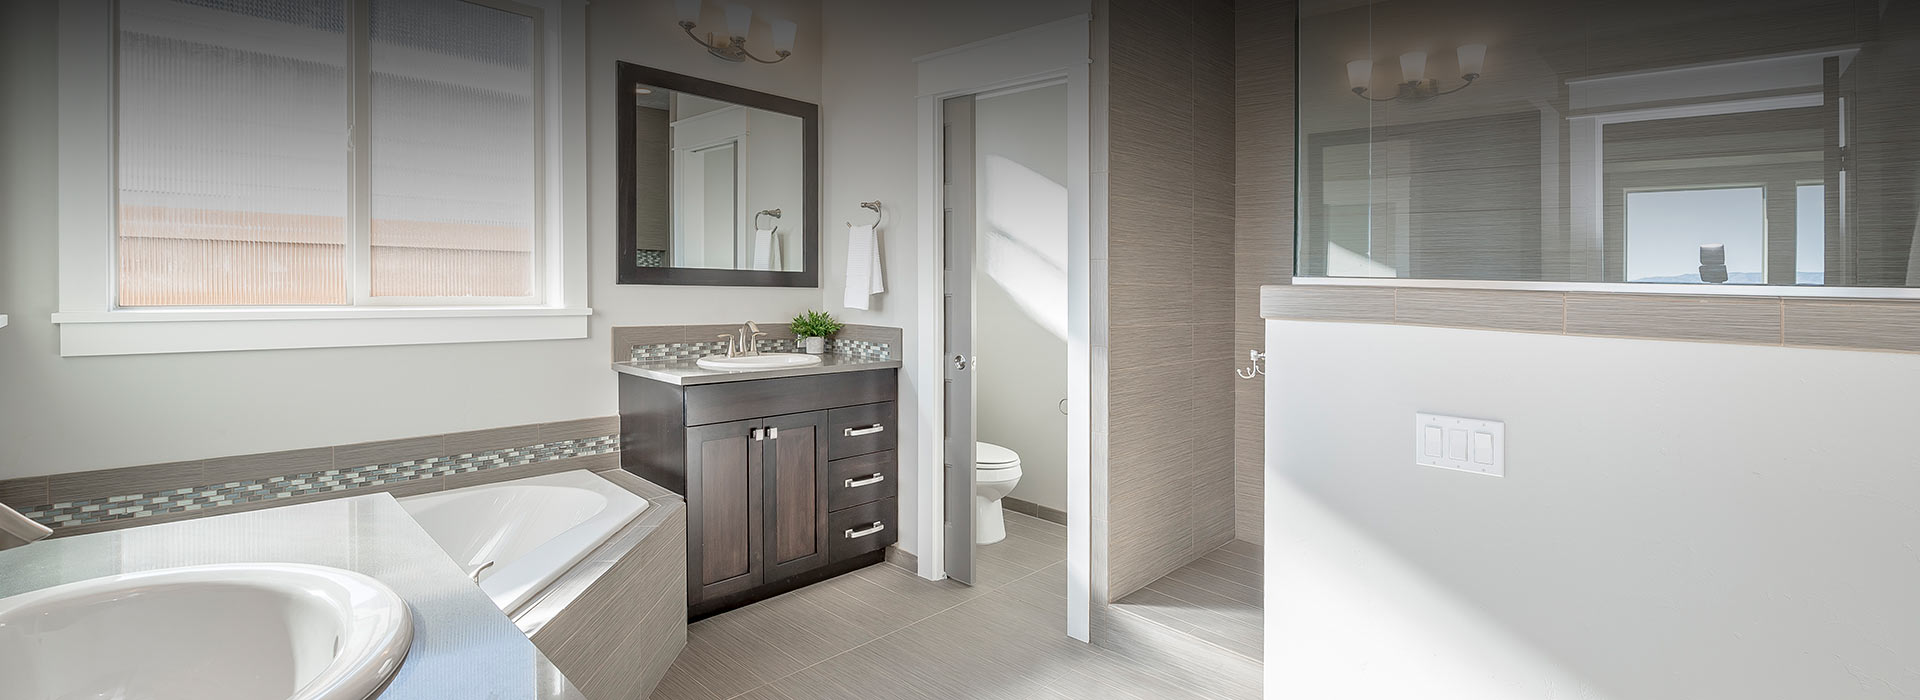 Savanna Master Bathroom